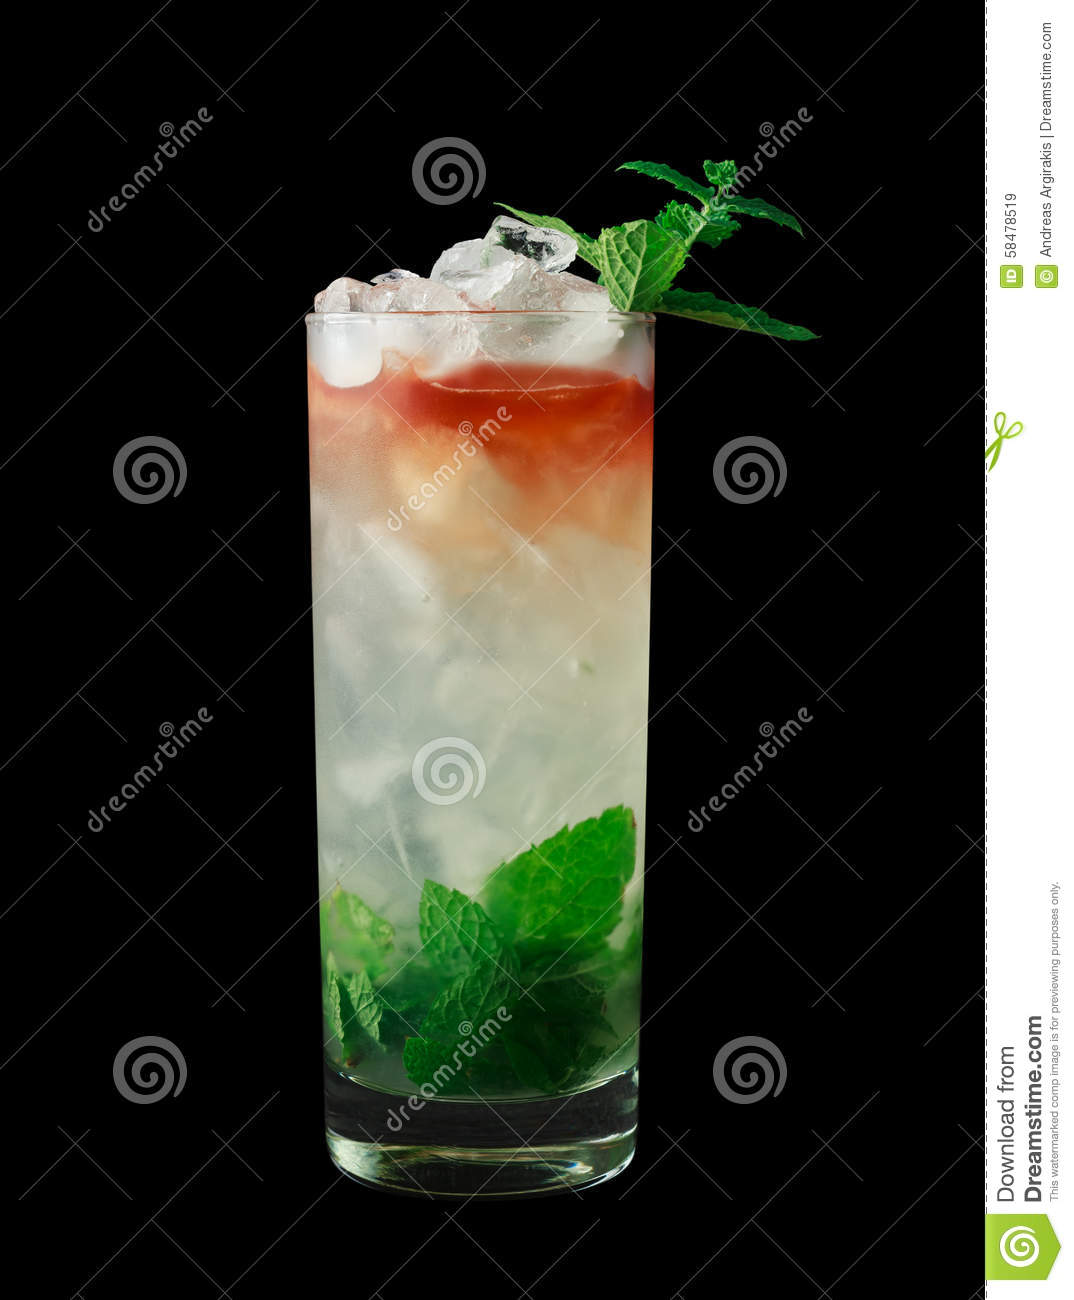 Queens Park Swizzle is a classic cocktail from the 1920s that contains ...